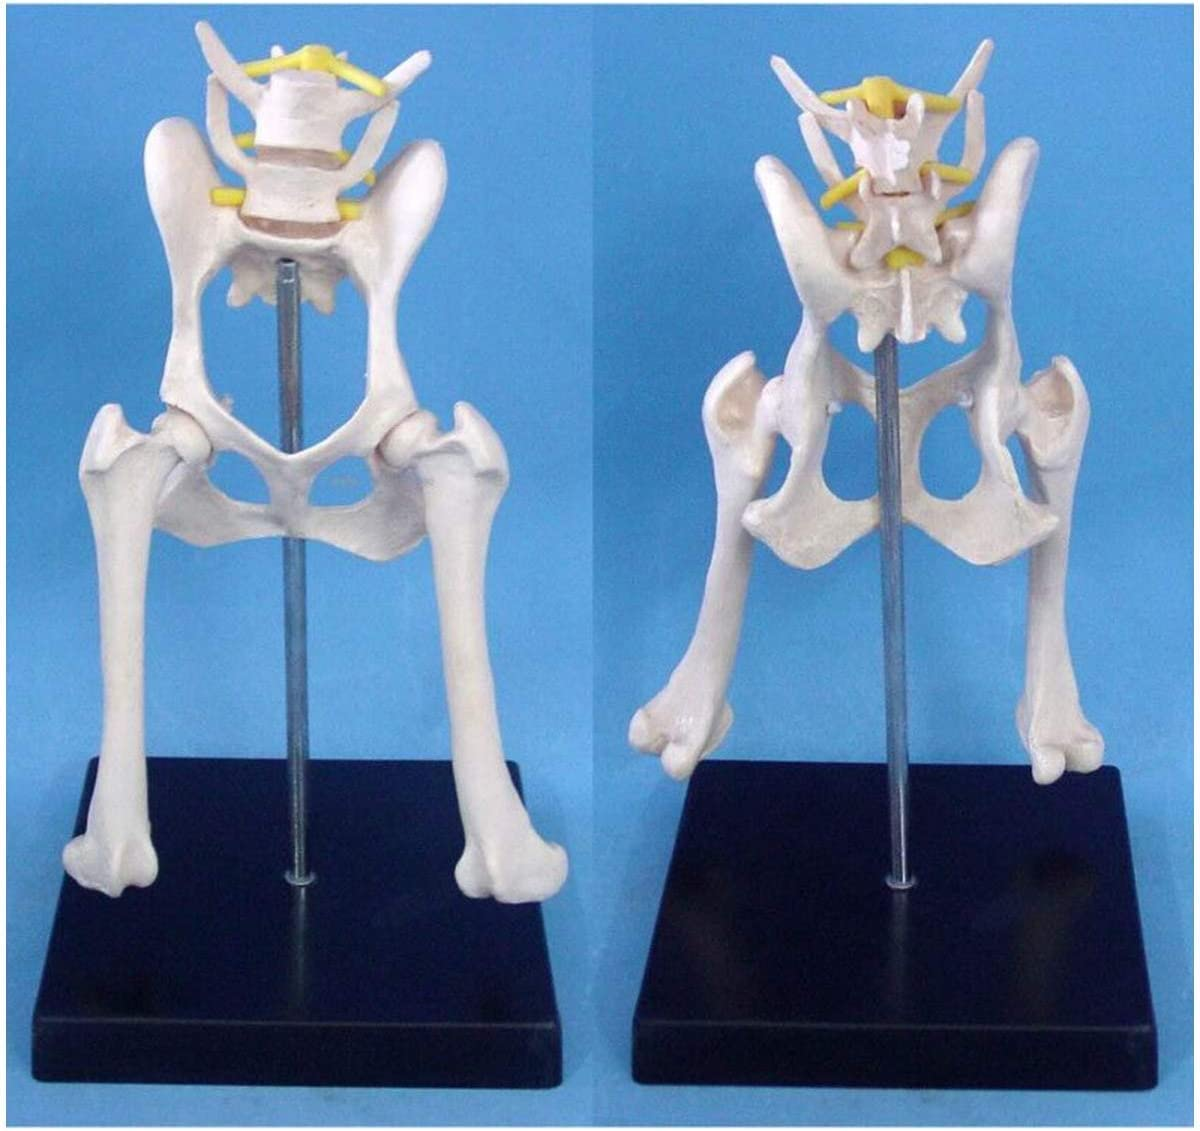 XYSQWZ Dog Max Max 56% OFF 60% OFF Hip Joint Model Skeleton Anatomical Medical Canine Bo